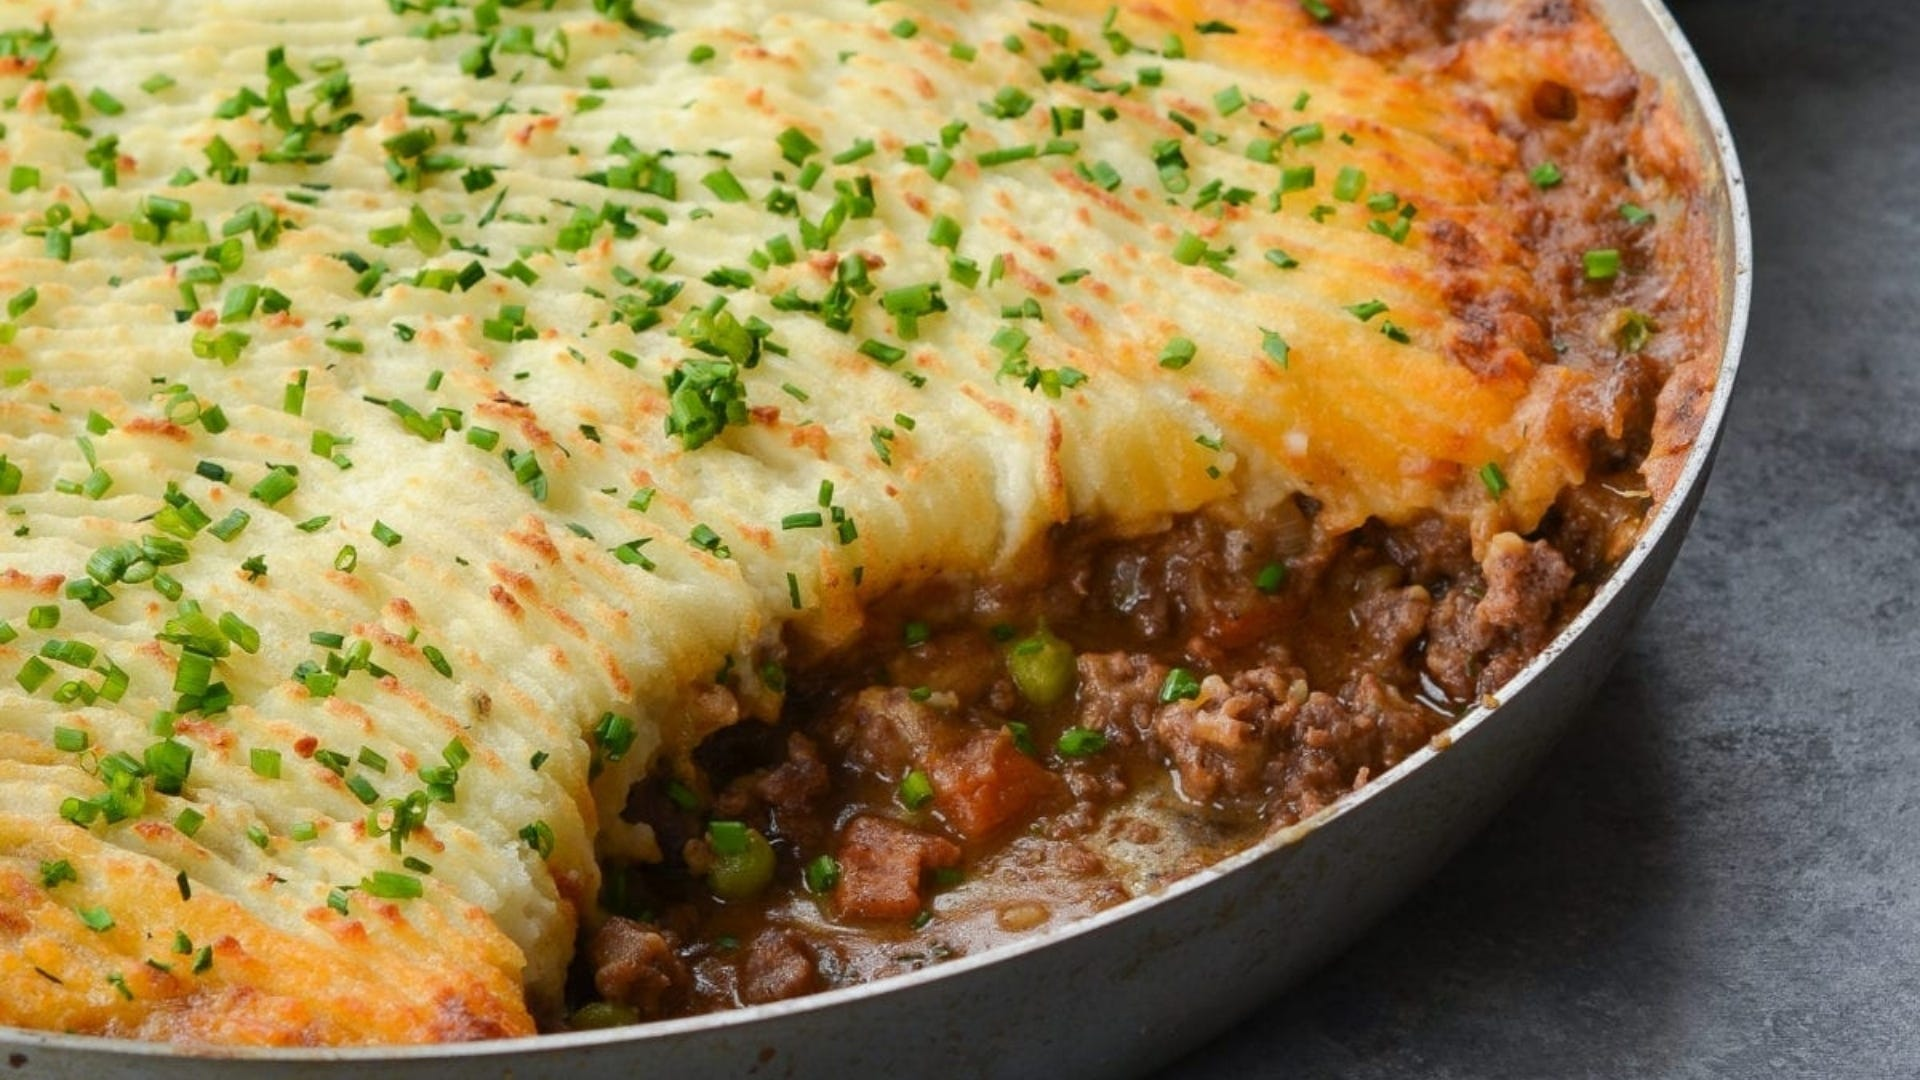 A pan of shepherd's pie with a serving removed, revealing the delicious meaty inside.